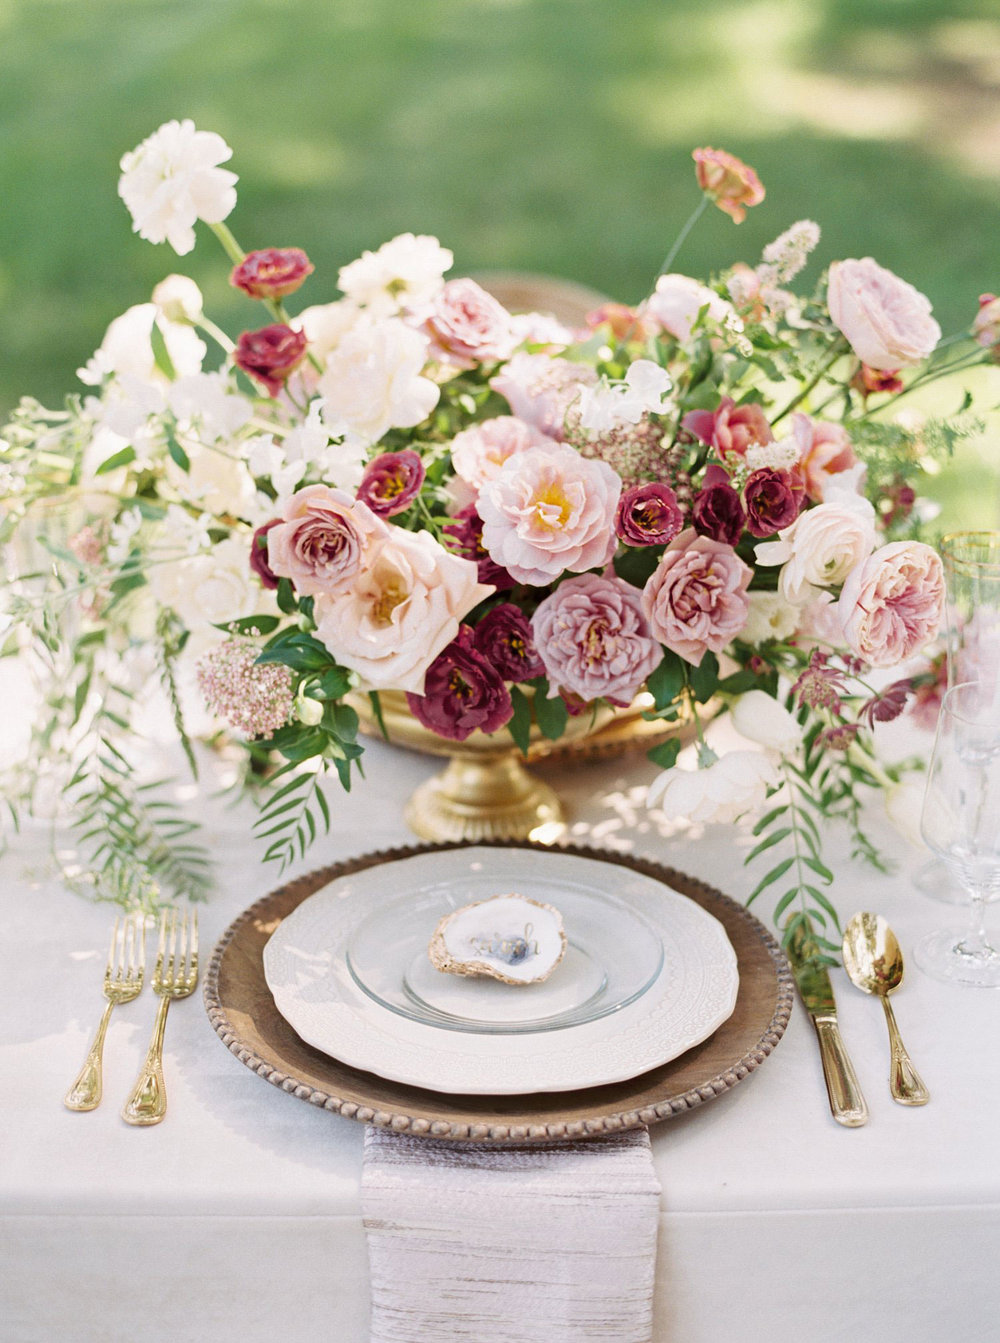 Southern Place setting with a wood charger and mauve flowers